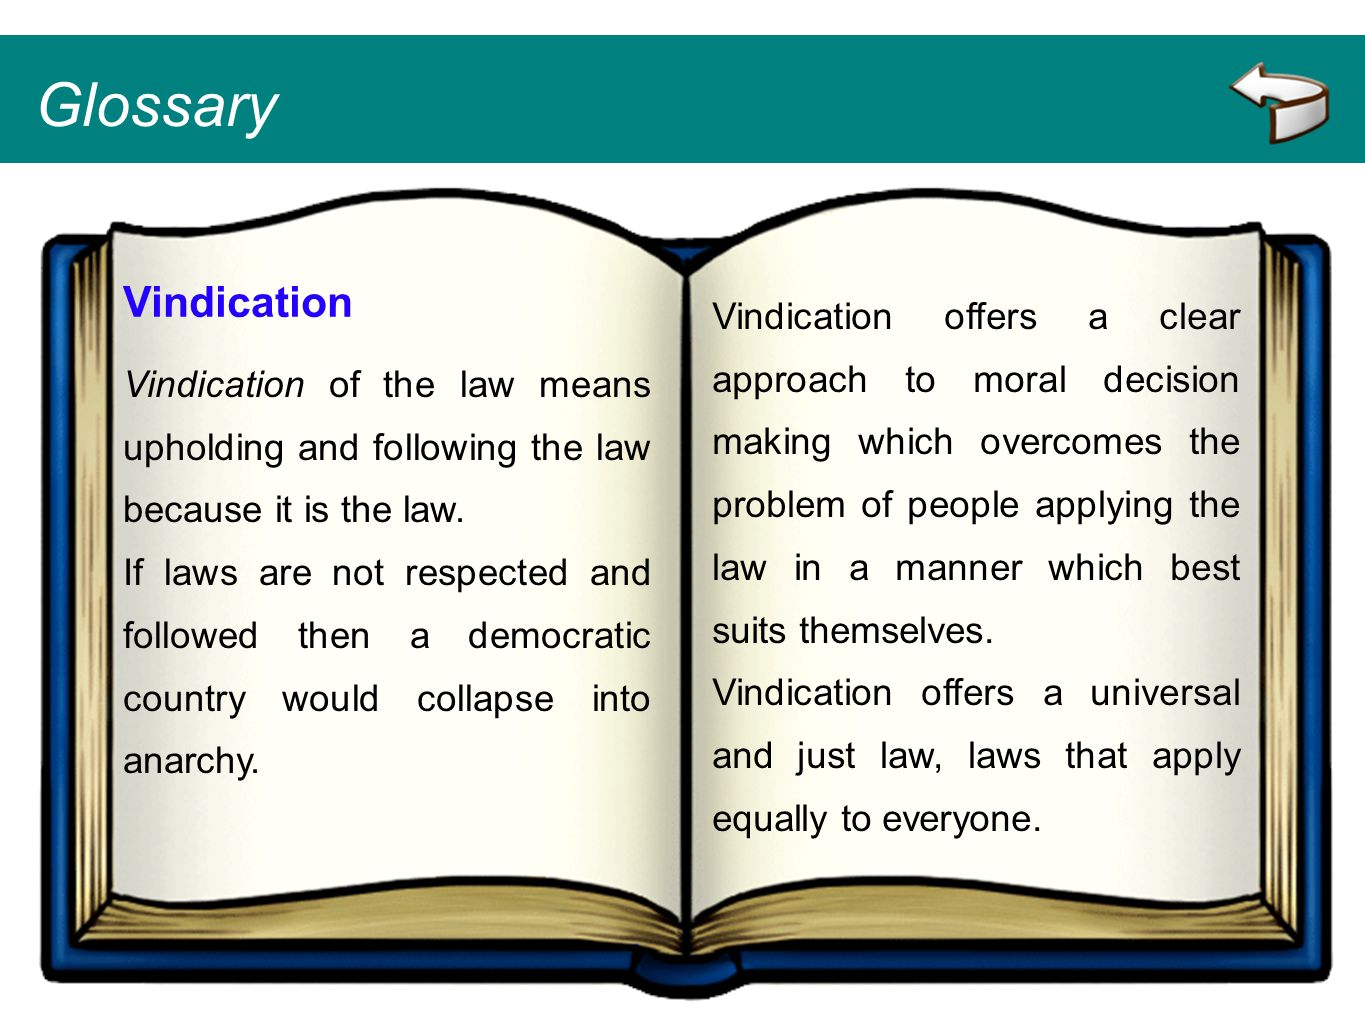 Glossary Vindication Vindication of the law means upholding and following the law because it is the law. If laws are not respected and followed then a